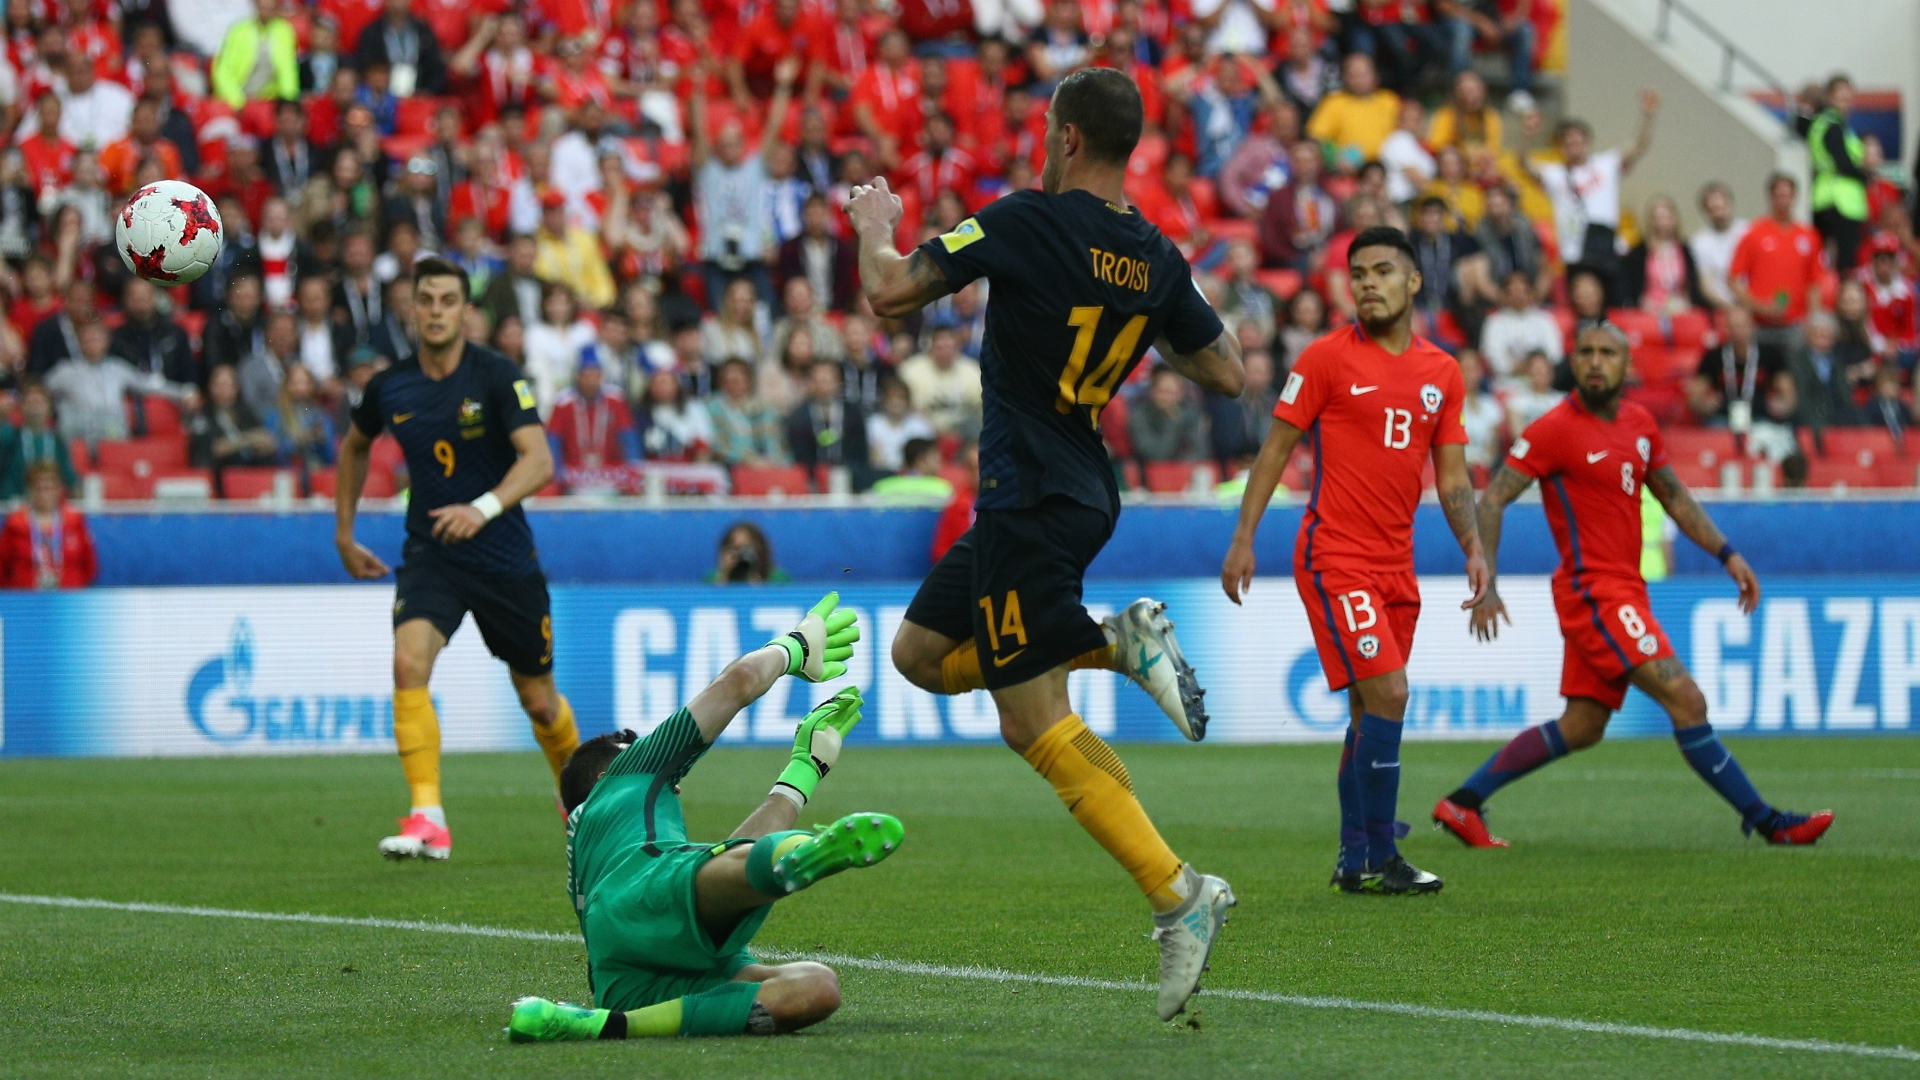 Australia needed to win by a two-goal margin in order to qualify for the semi-finals of the Confed Cup.